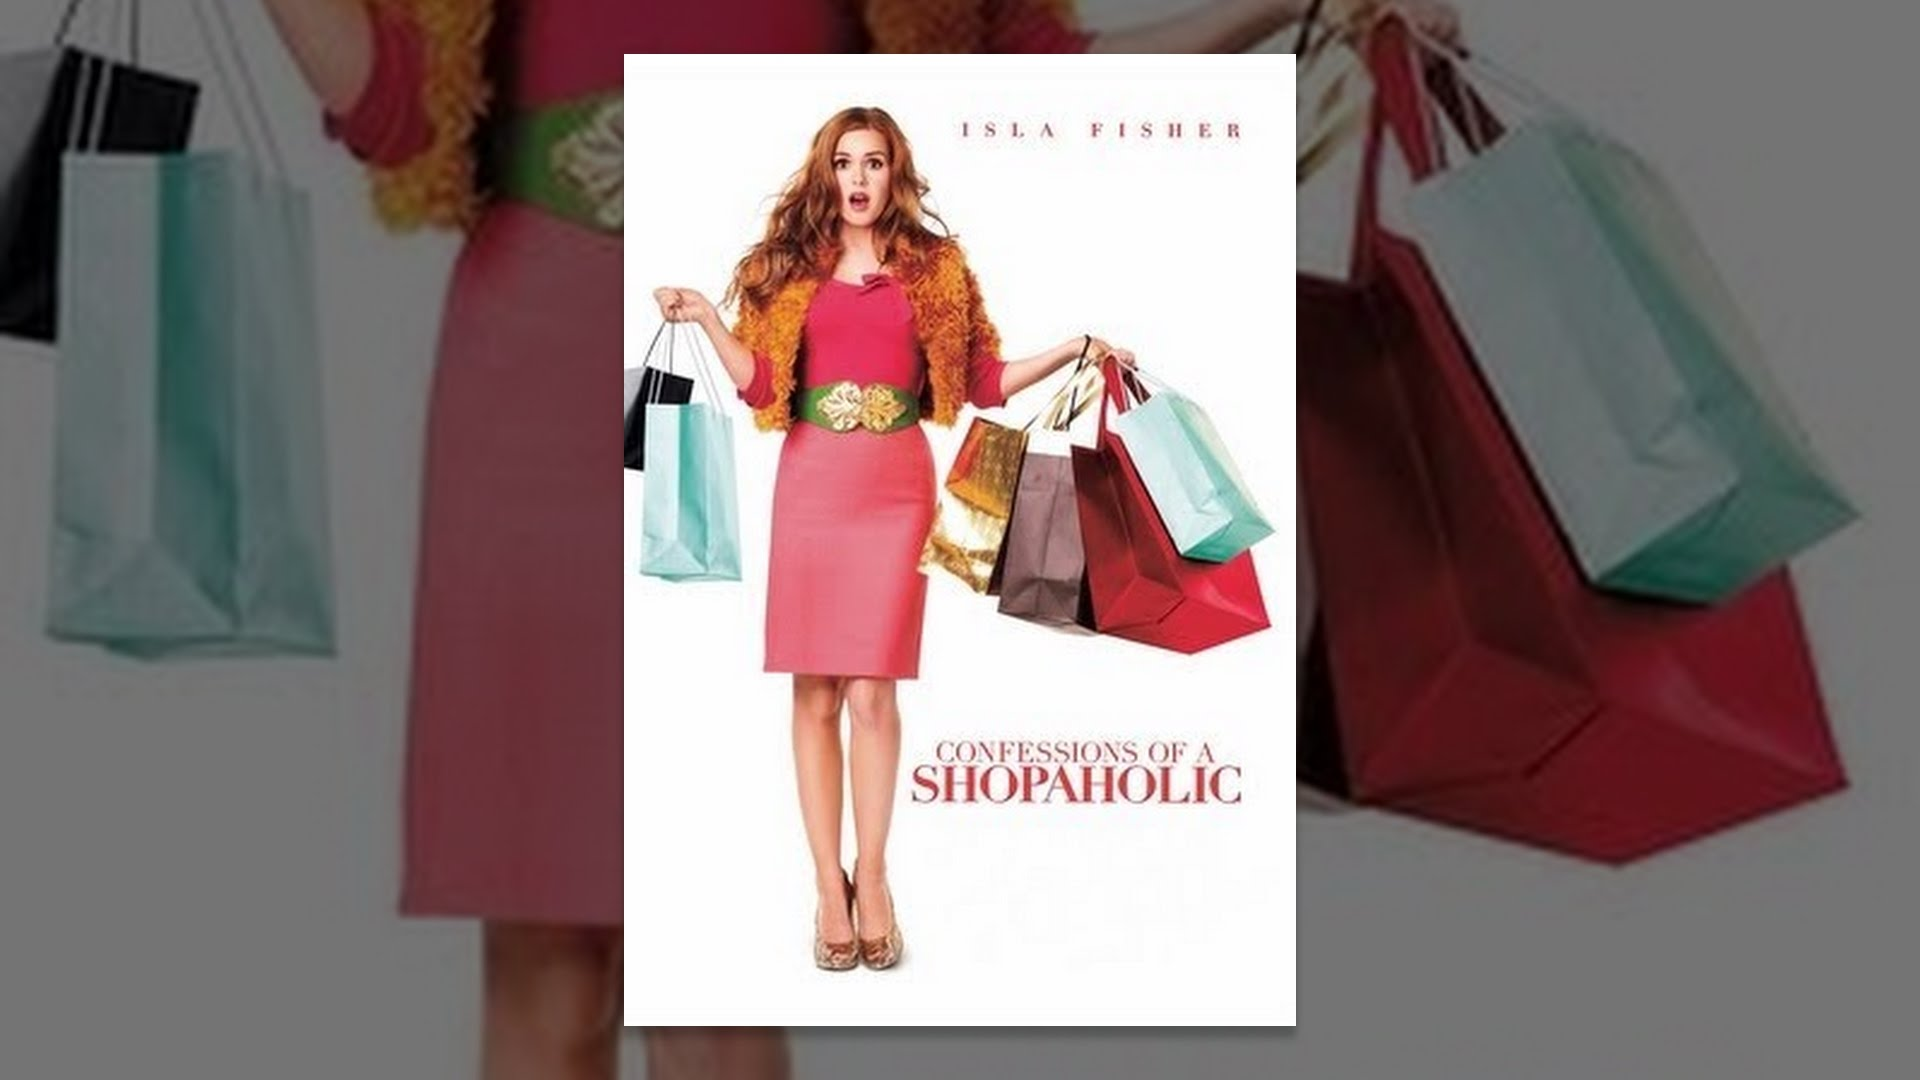 Confessions of a Shopaholic - 2009